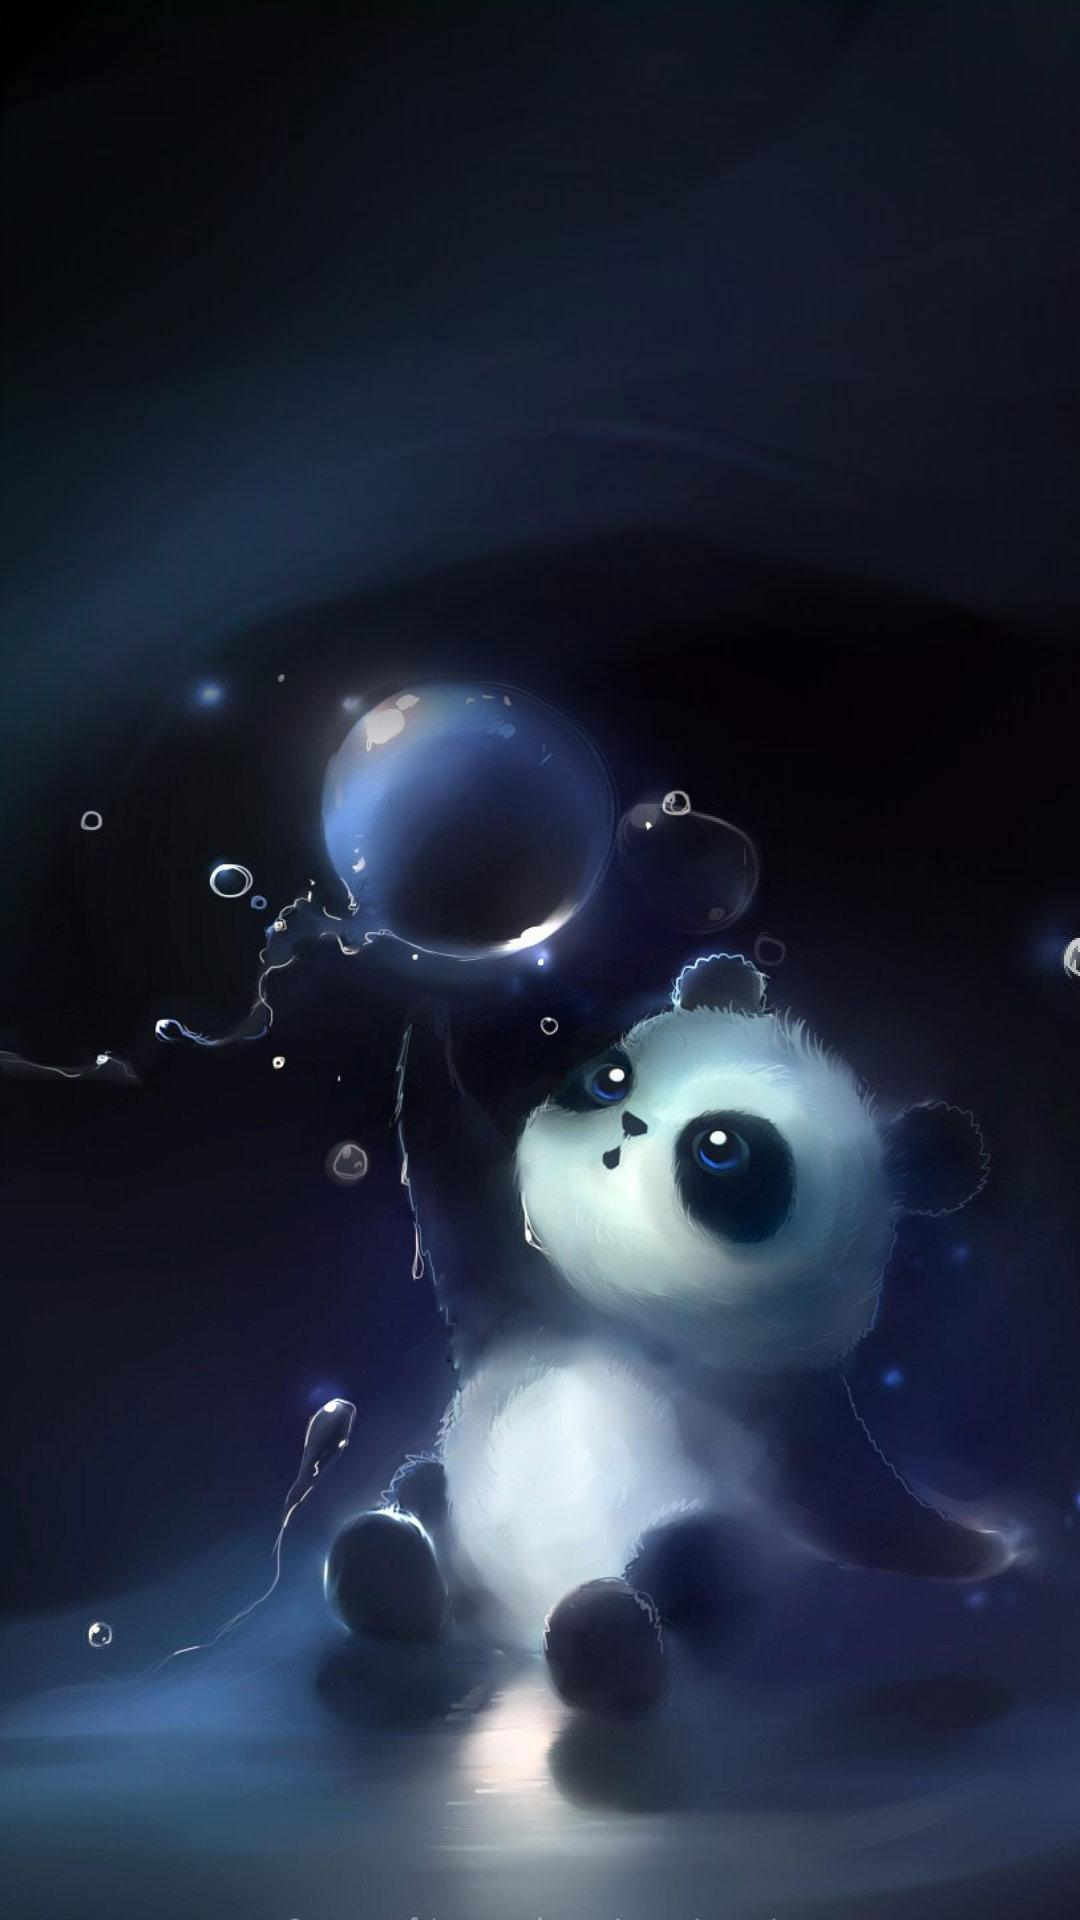 Cute Baby Panda Live Wallpaper For Android Apk Download